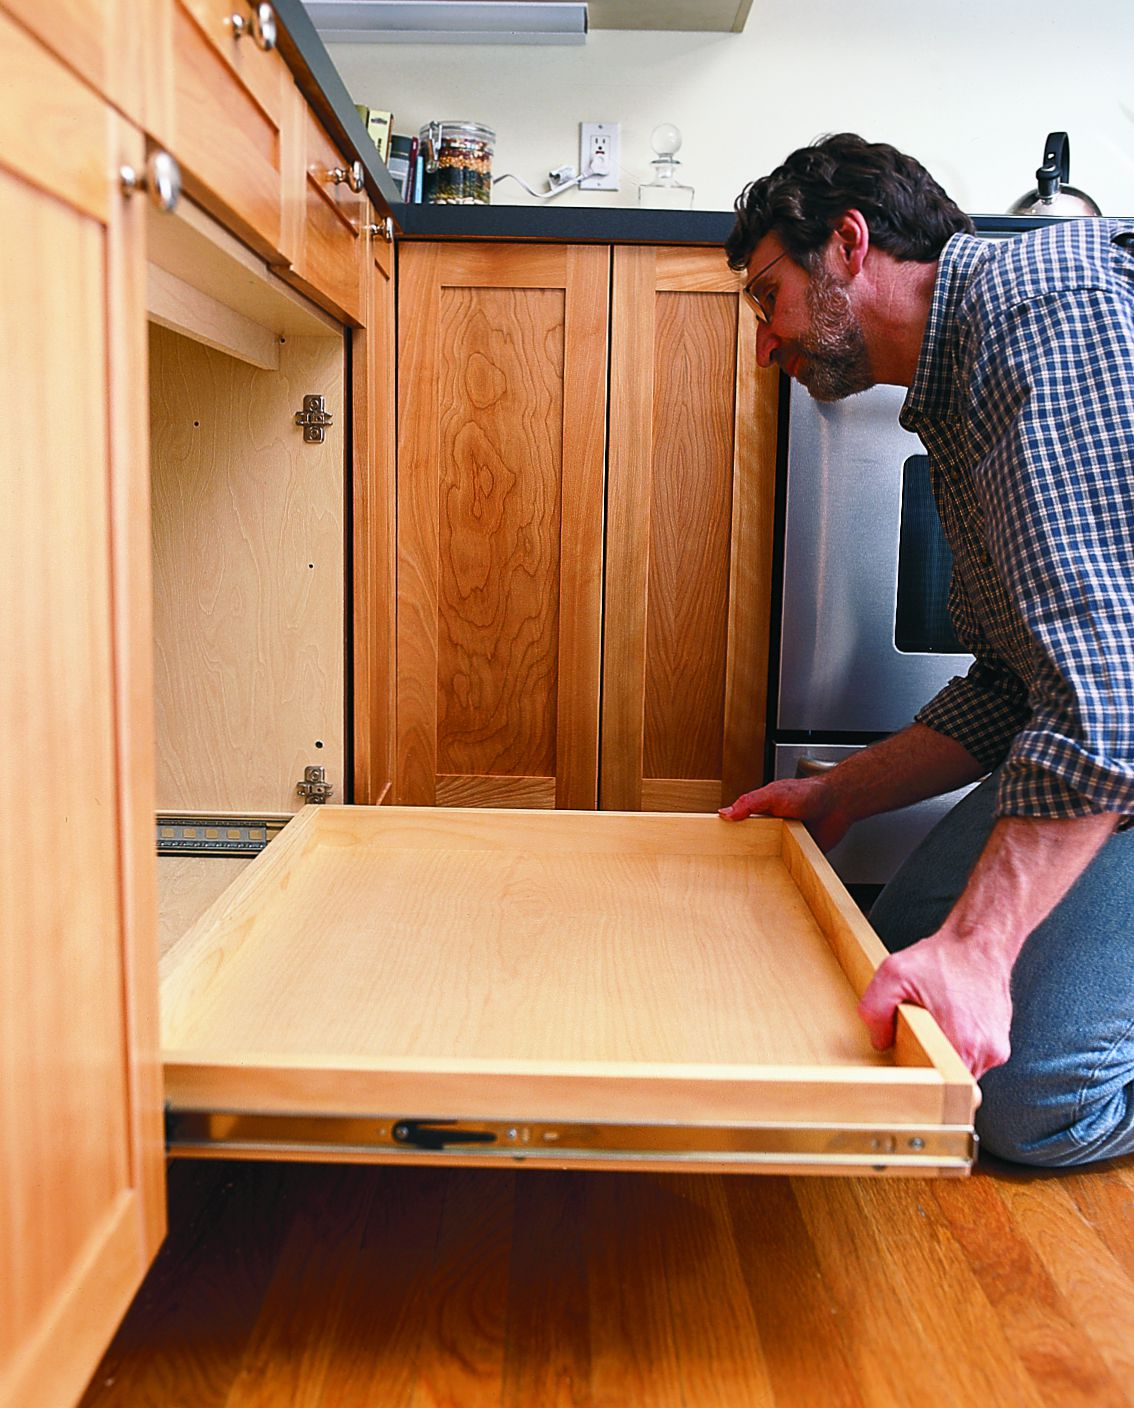 How To Install A Pull Out Kitchen Shelf This Old House